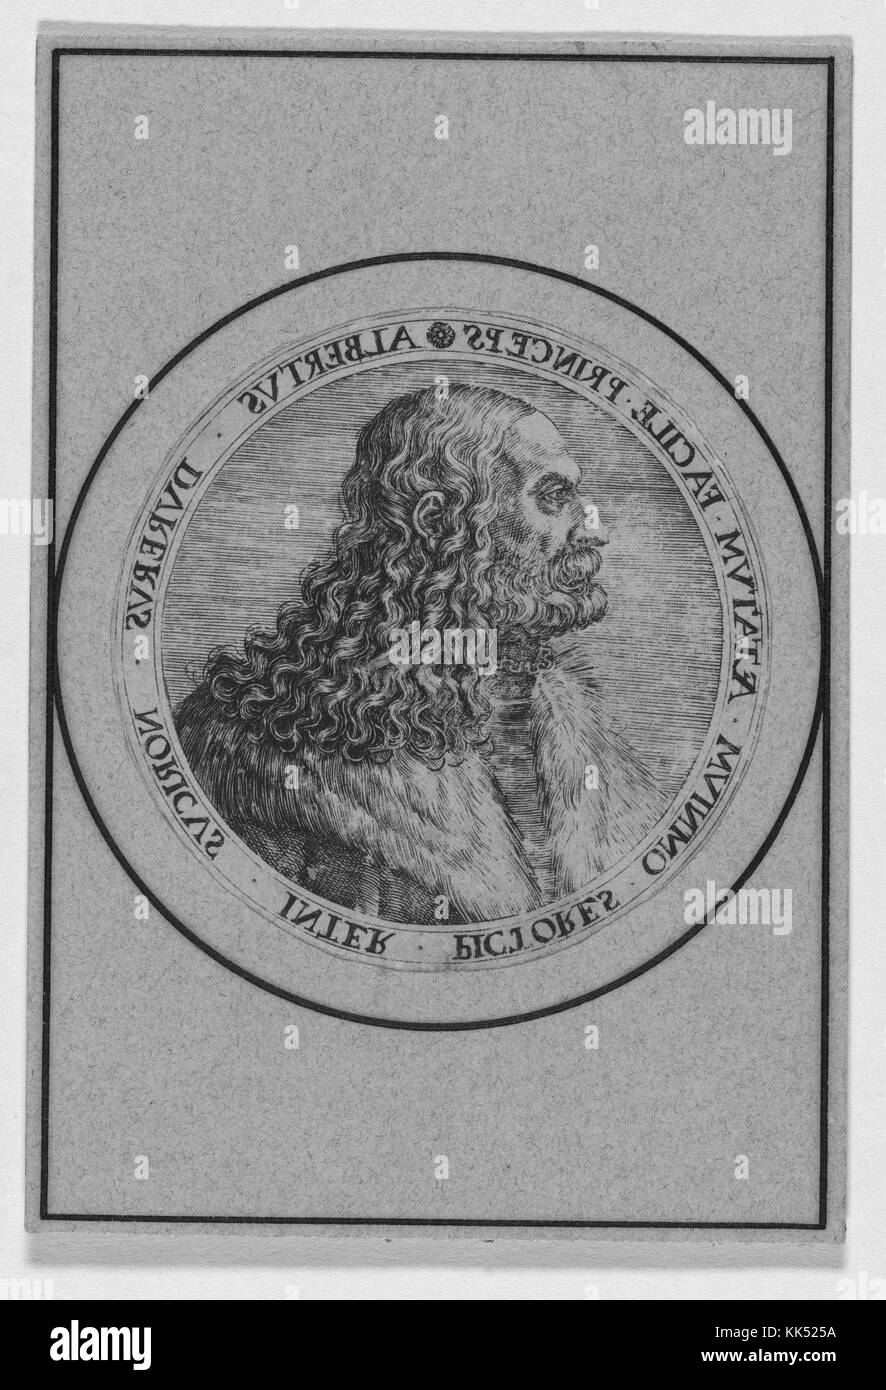 Engraved portrait of Albrecht Durer, was a painter, printmaker and theorist of the German Renaissance, 1550. From - Stock Image